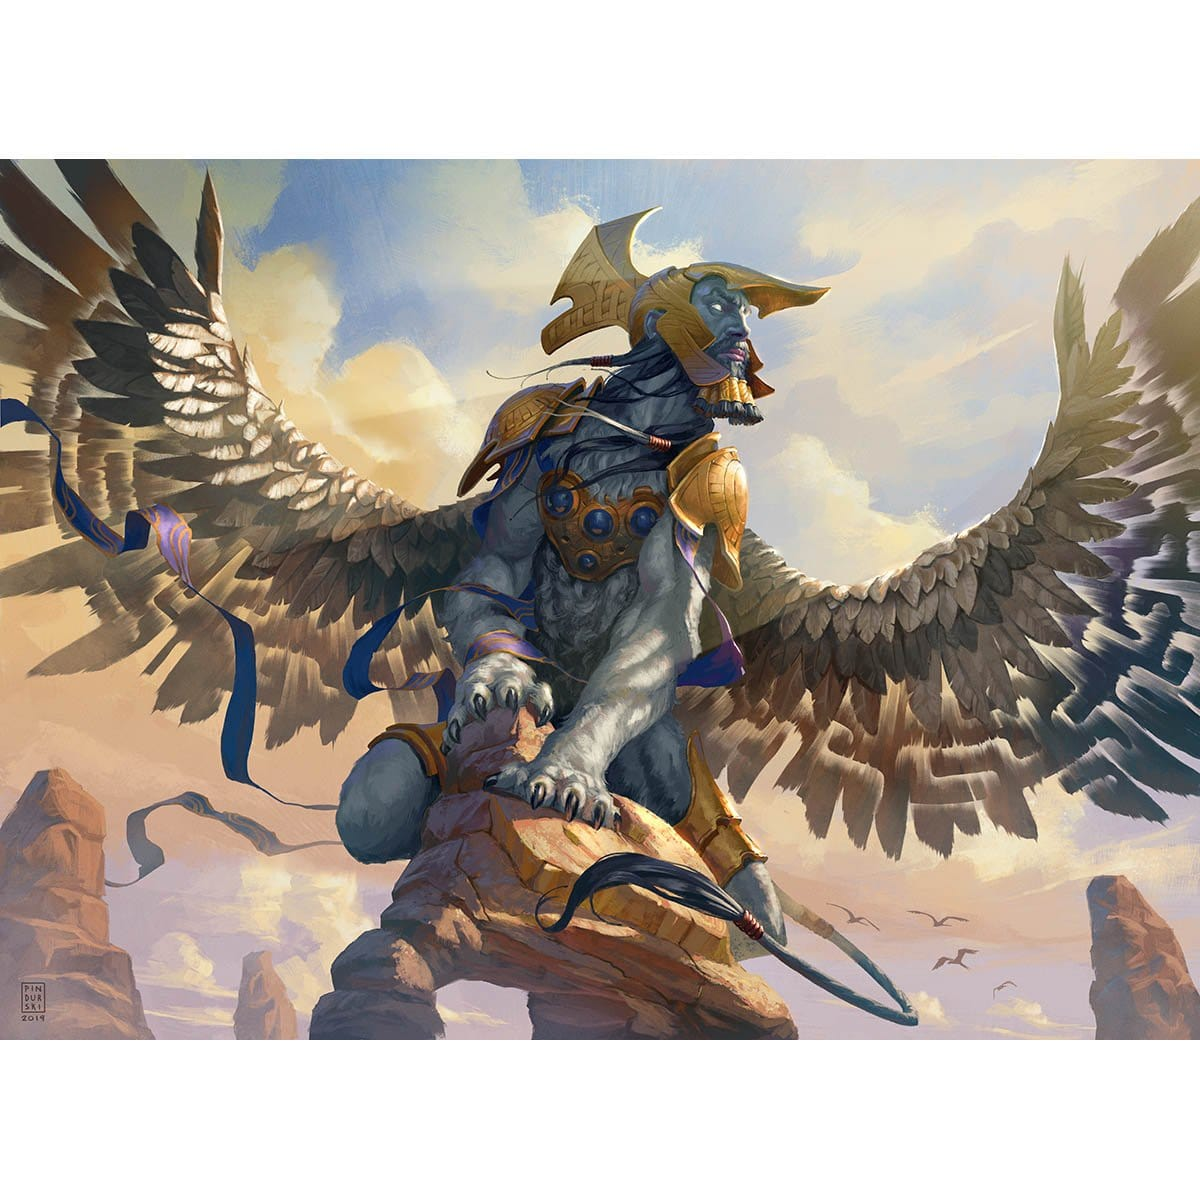 Sphinx Mindbreaker Print - Print - Original Magic Art - Accessories for Magic the Gathering and other card games